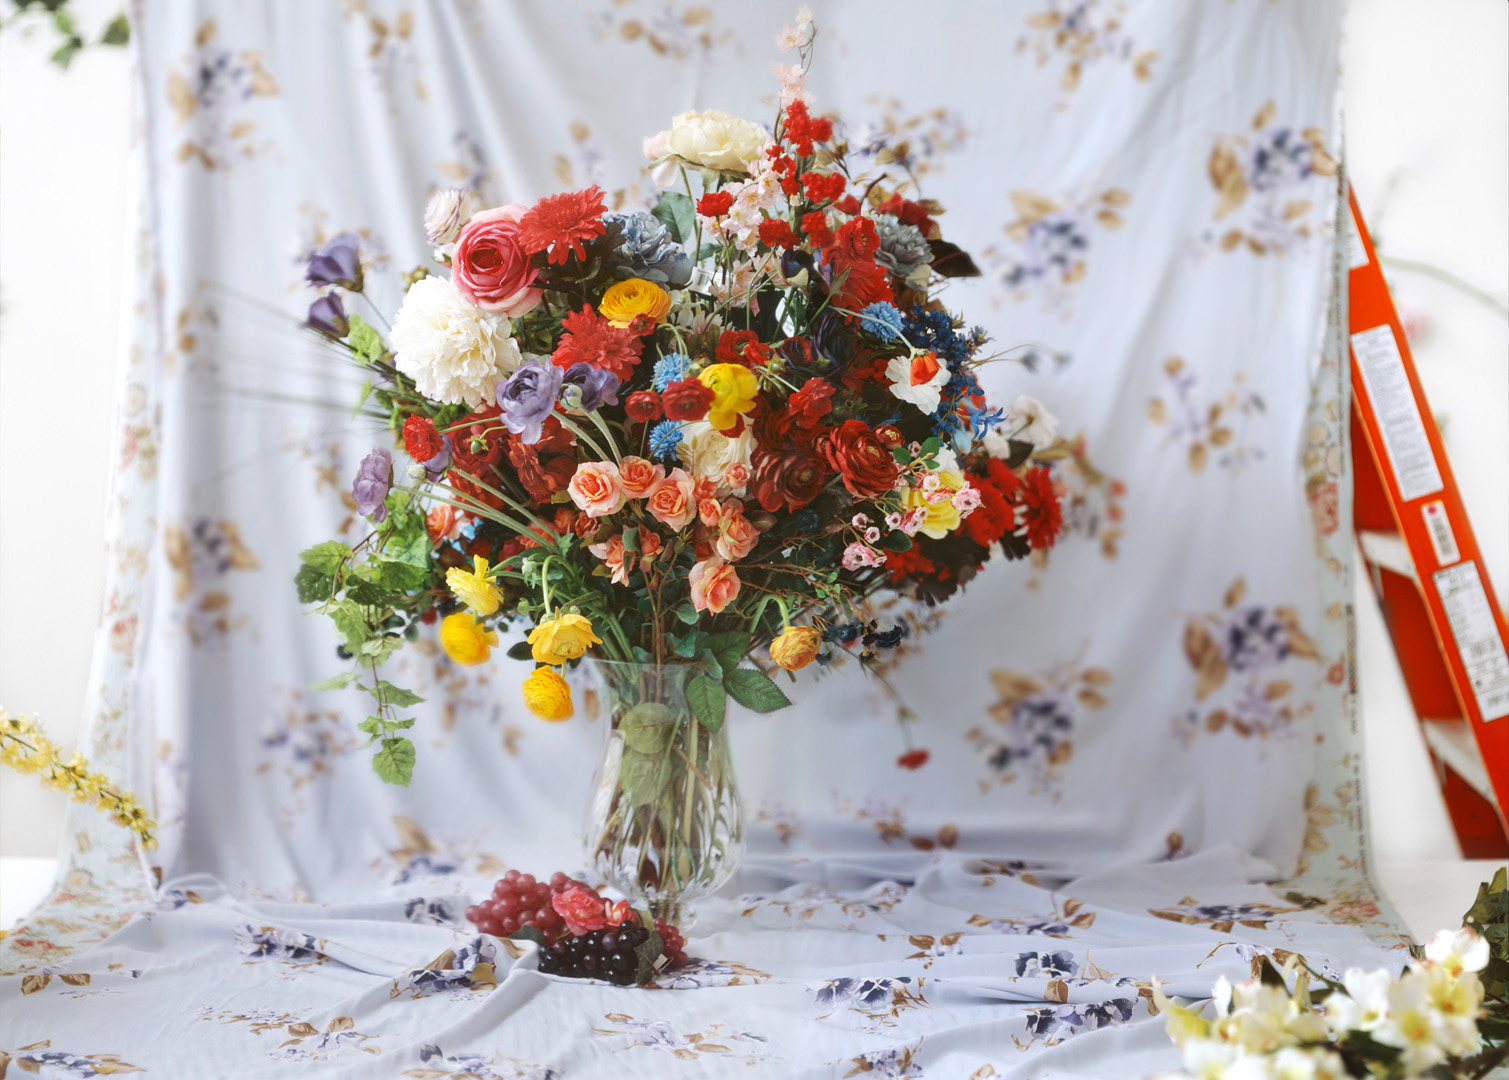 Bouquet with Ladder , 21 x 30 inches, archival pigment print, 2009